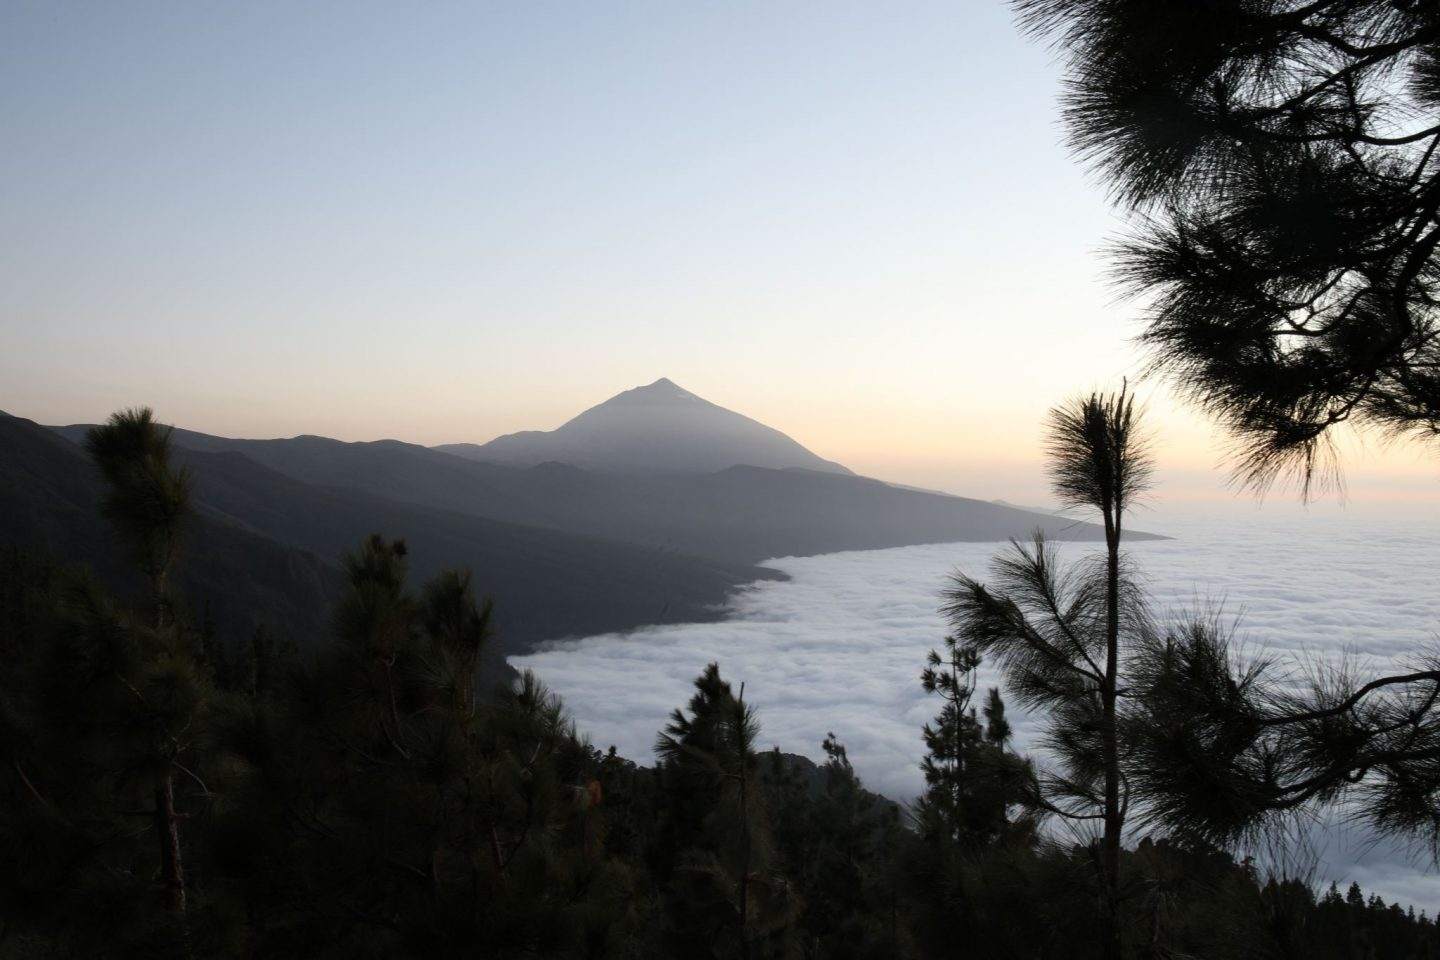 Mirador De Chipeque, Tenerife, Canary Islands, Katie Heath, KALANCHOE